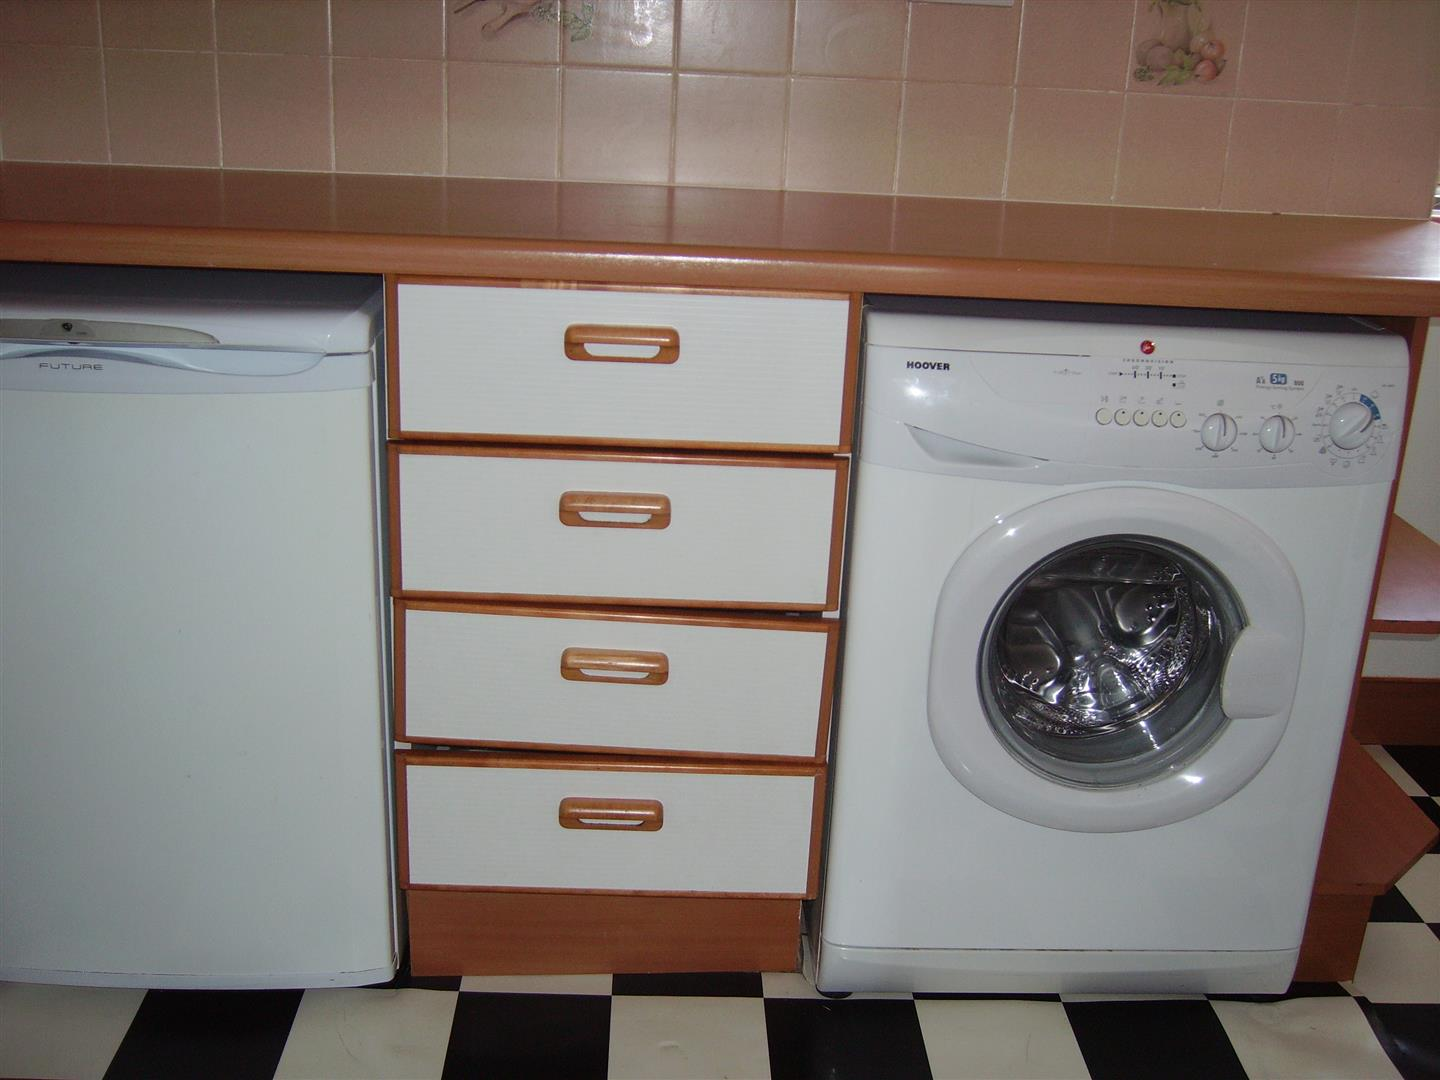 2 bed flat to rent in Long Sutton Spalding, PE12 9RL 3